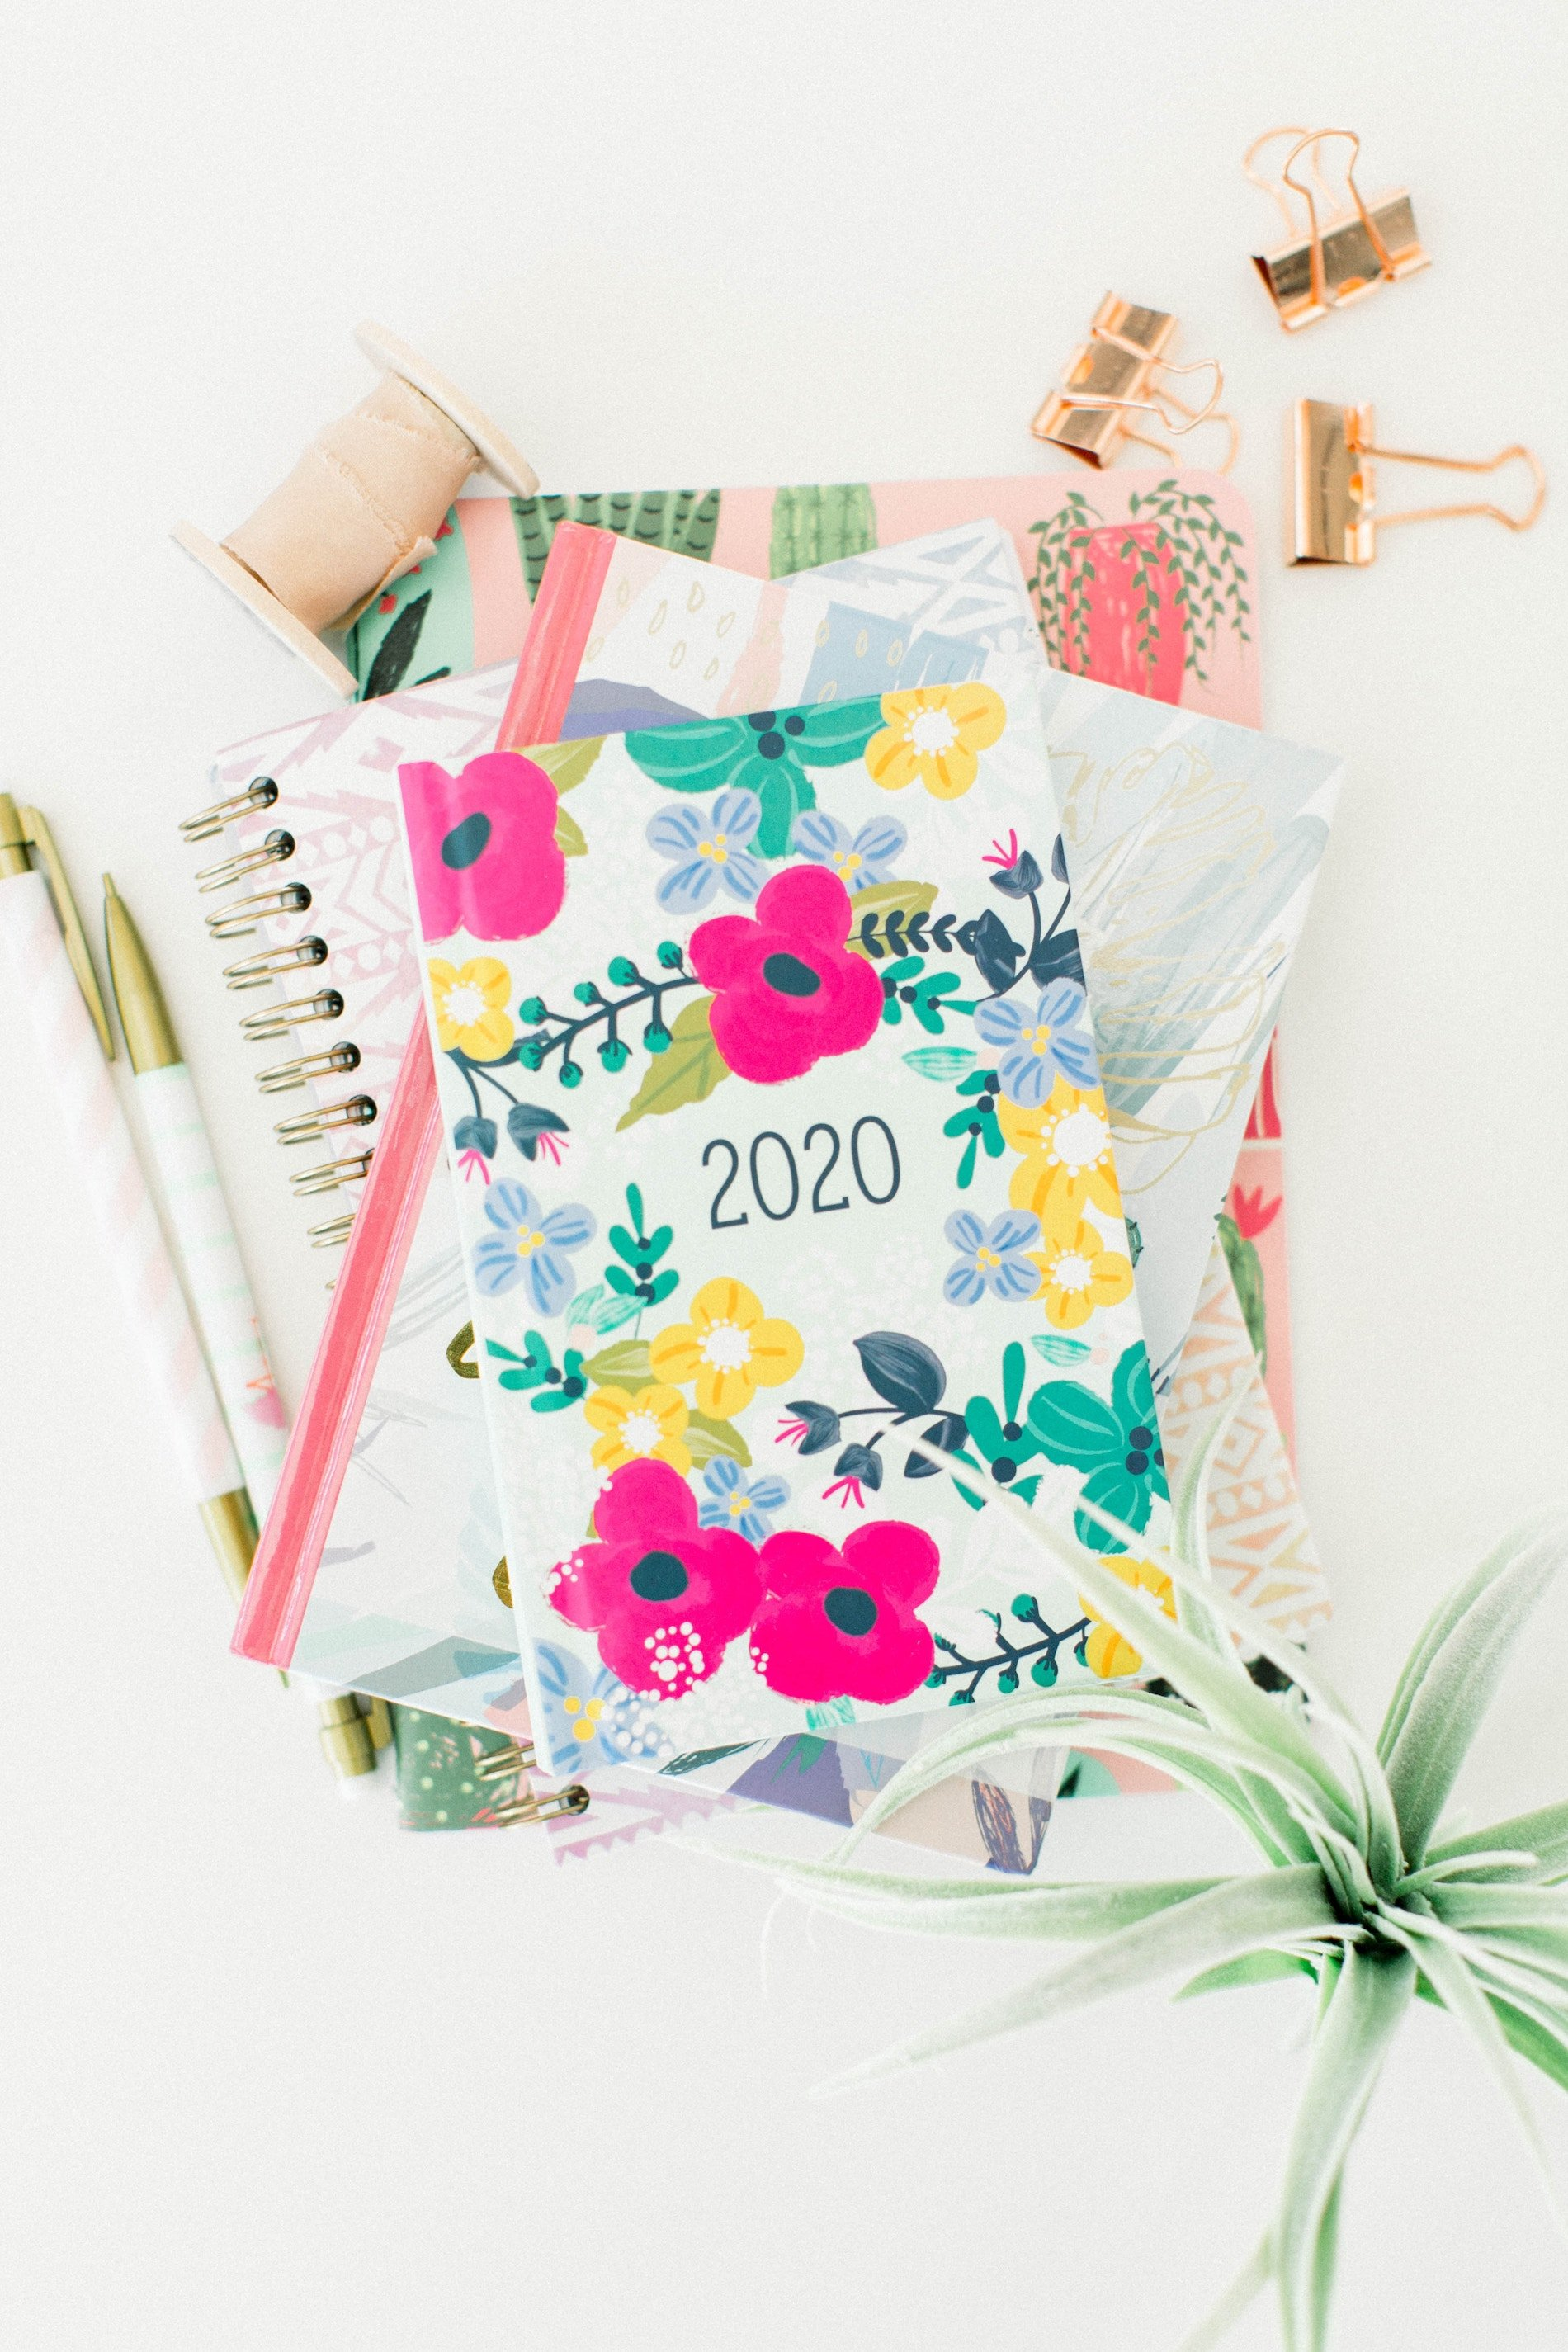 January 2020 New Year Goals Buy a Home